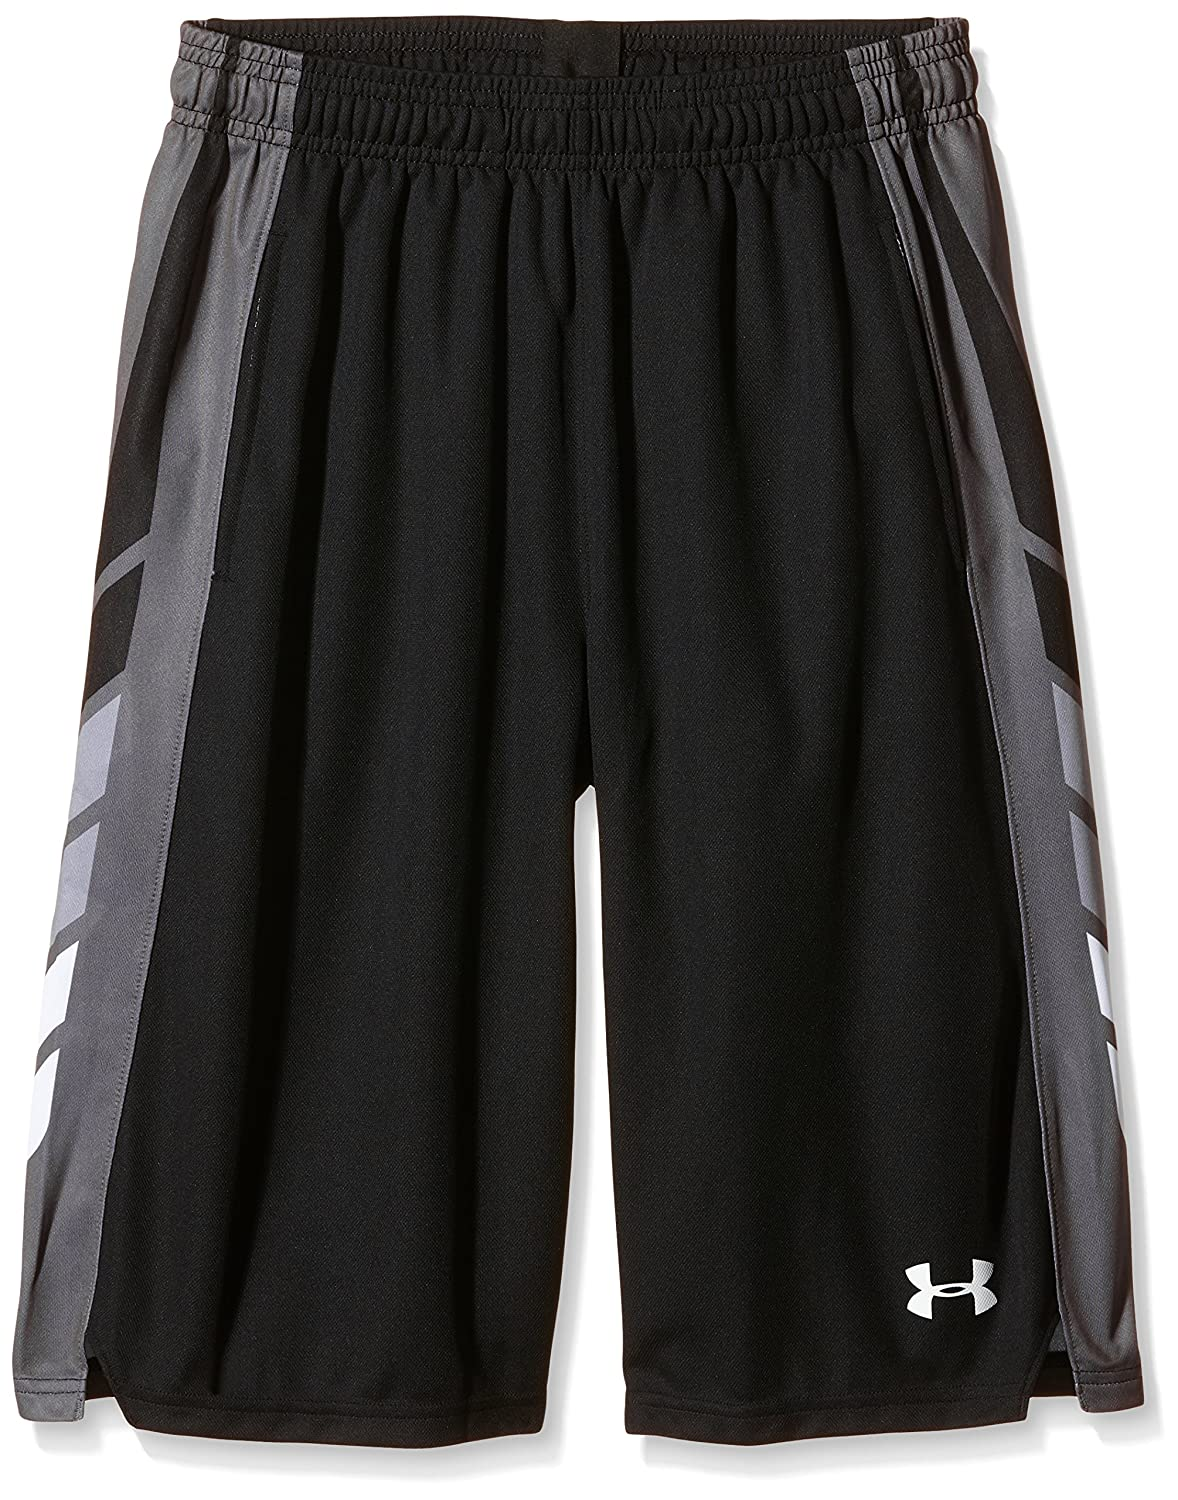 Pantal/ón Corto de Baloncesto para Hombre Under Armour Select 1271889/_001